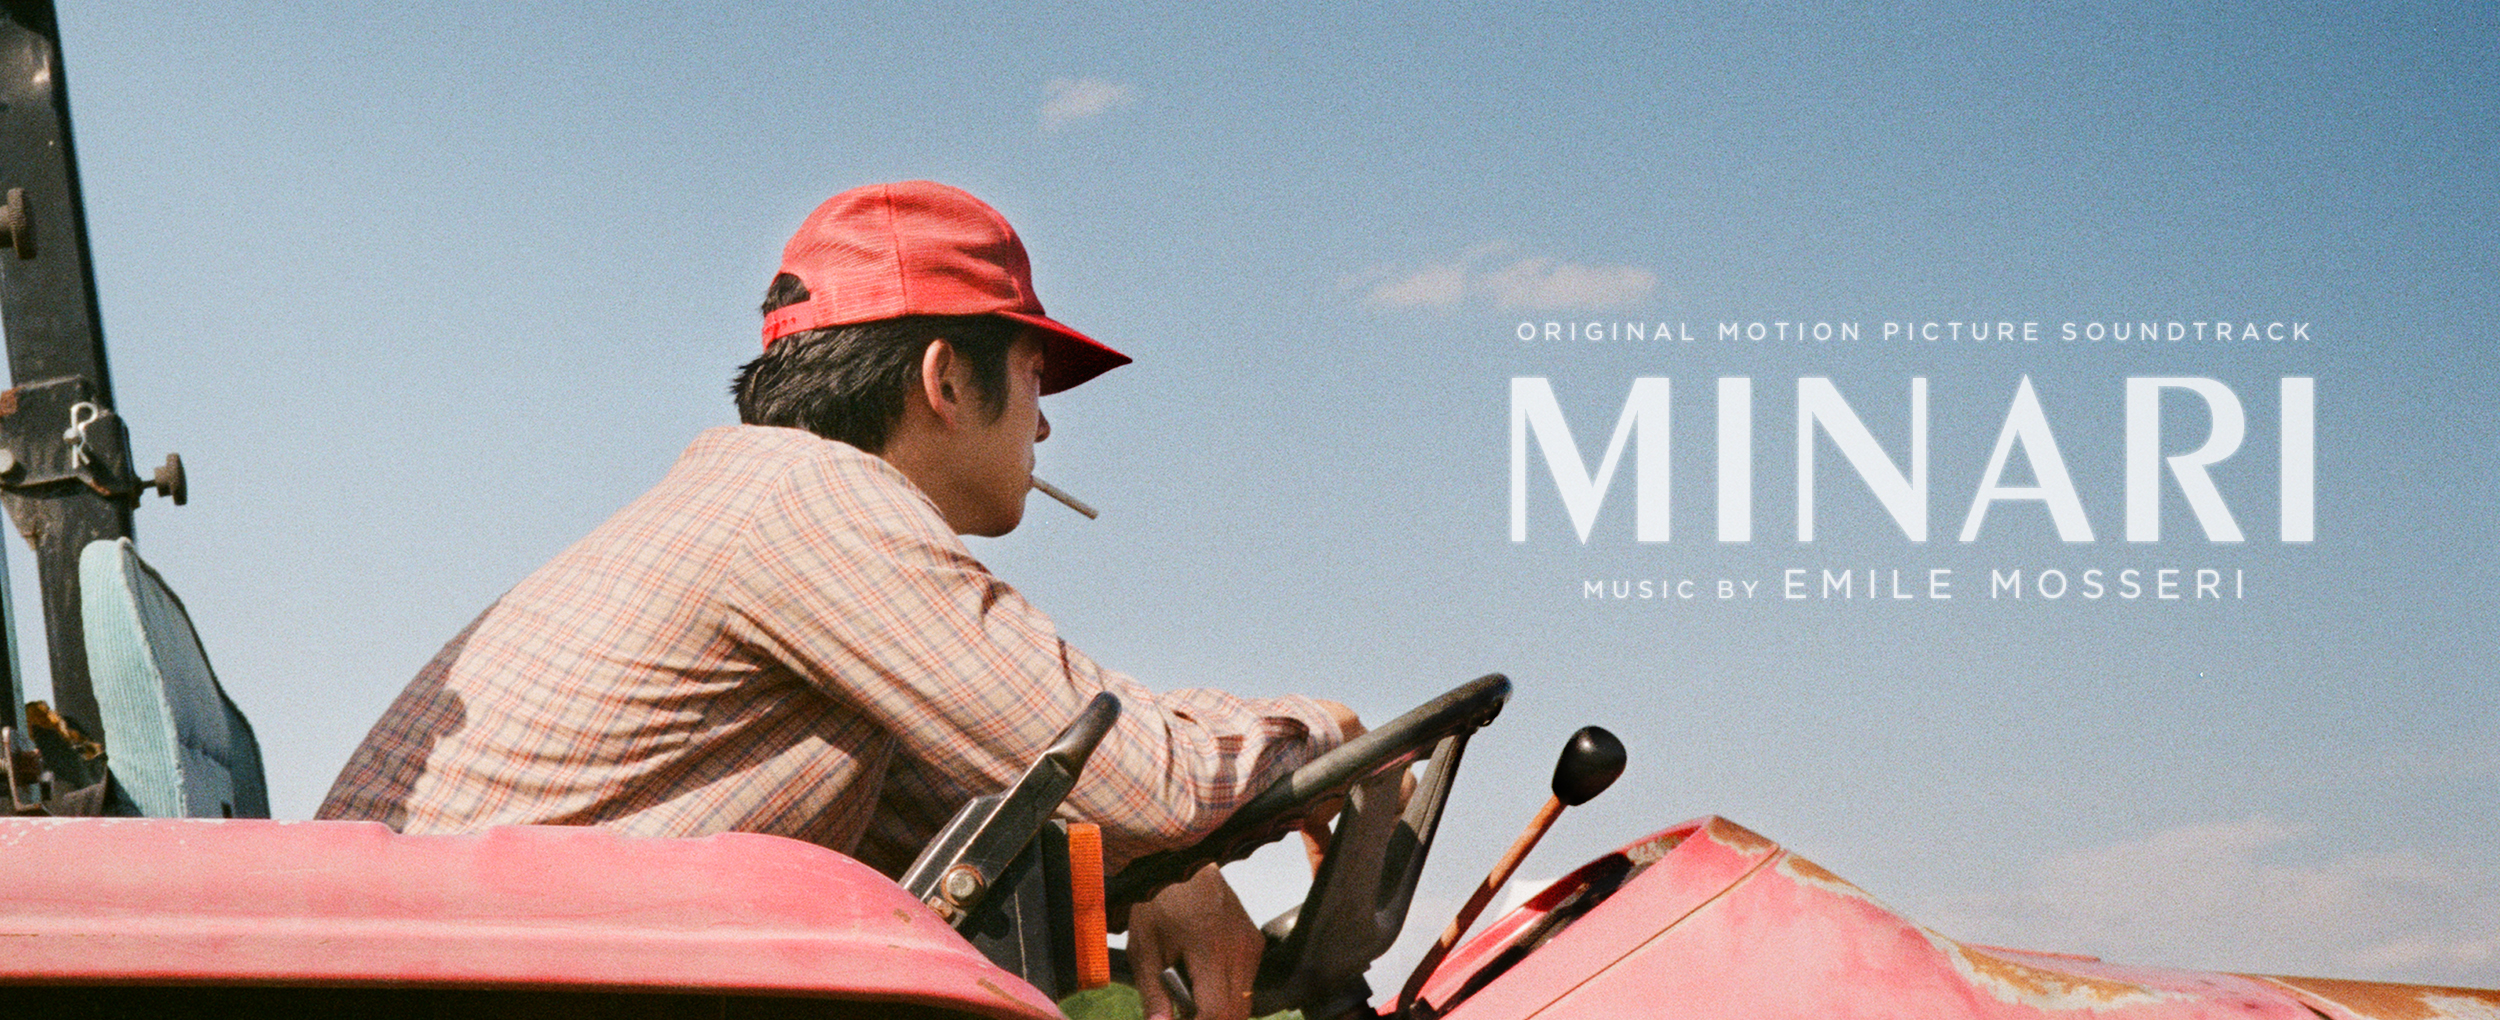 Minari (Original Motion Picture Soundtrack) - banner